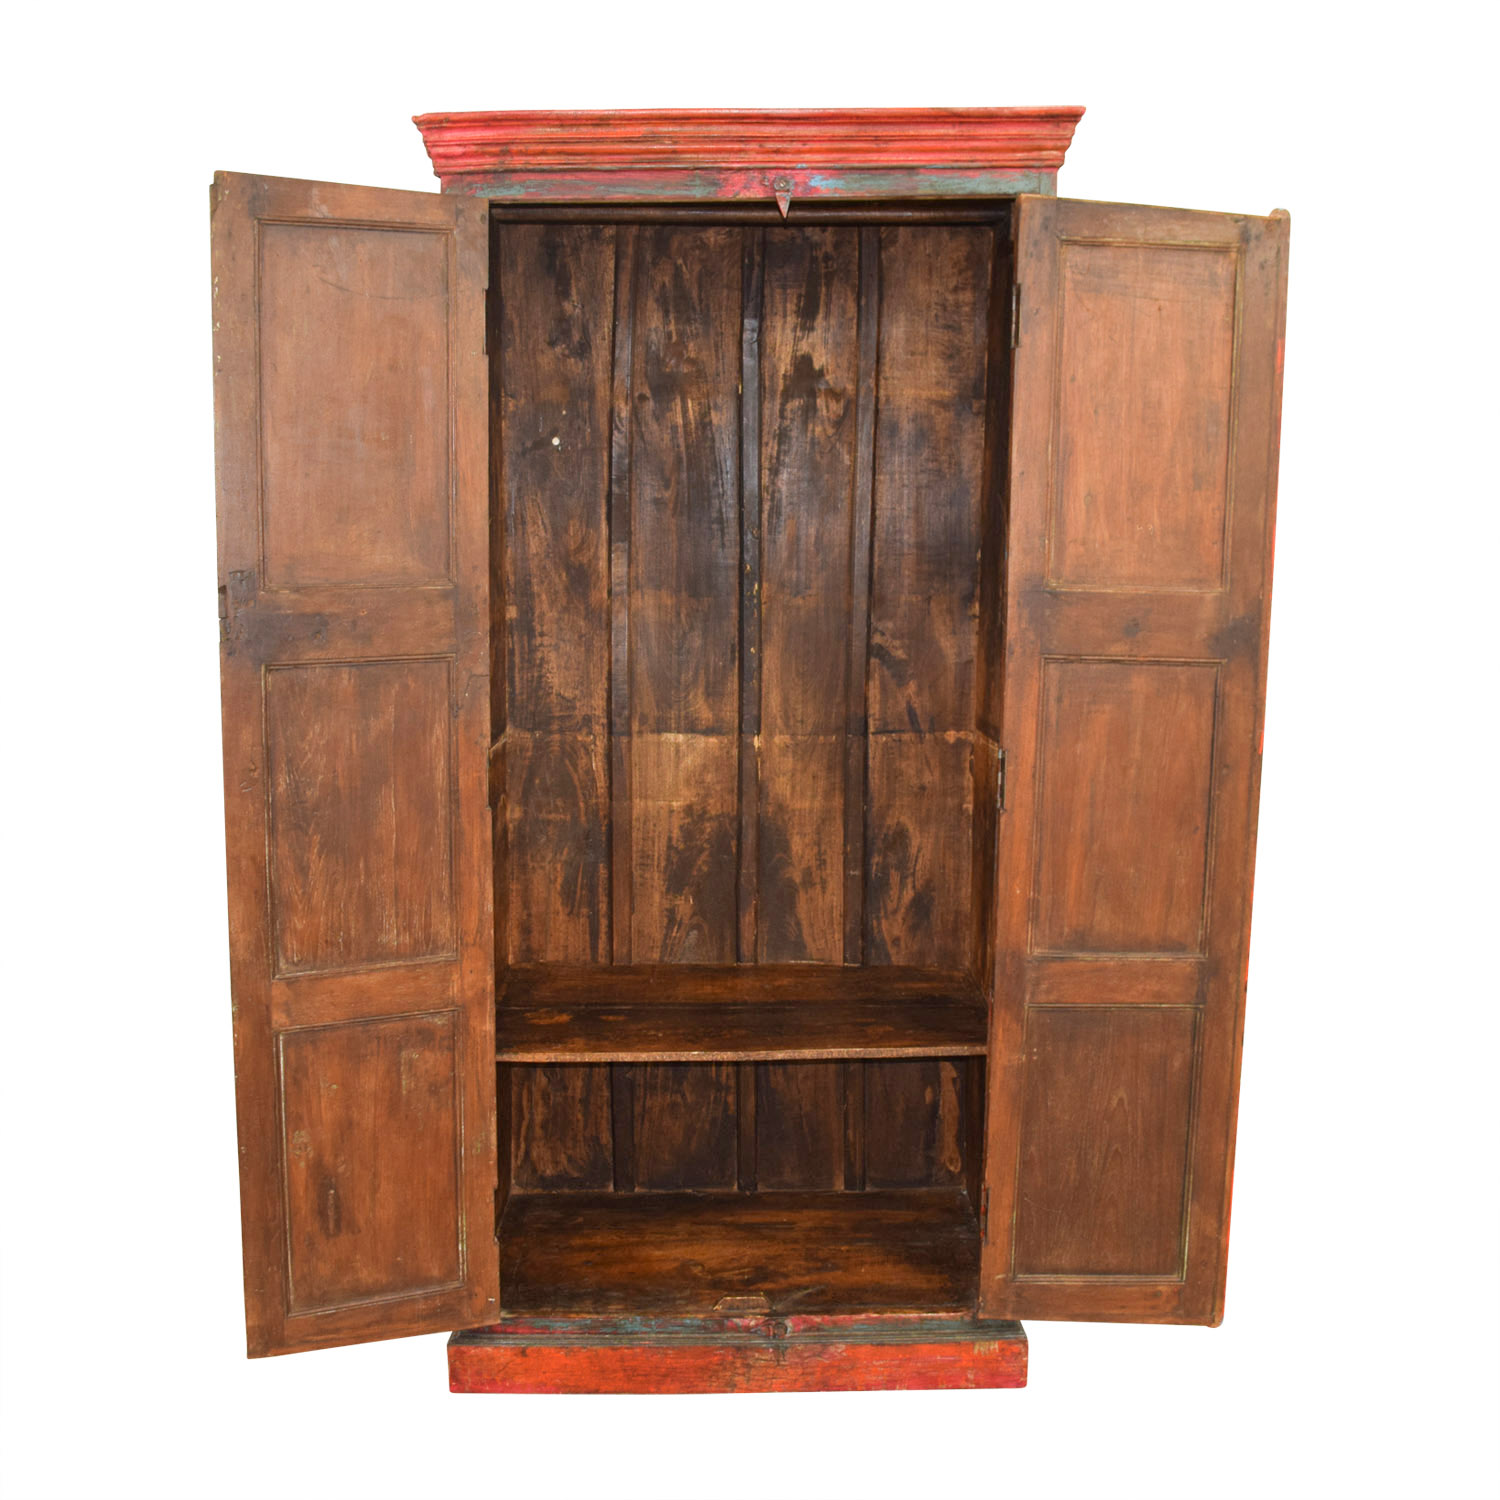 Nadeau Nadeau Rustic Blue and Red Armoire